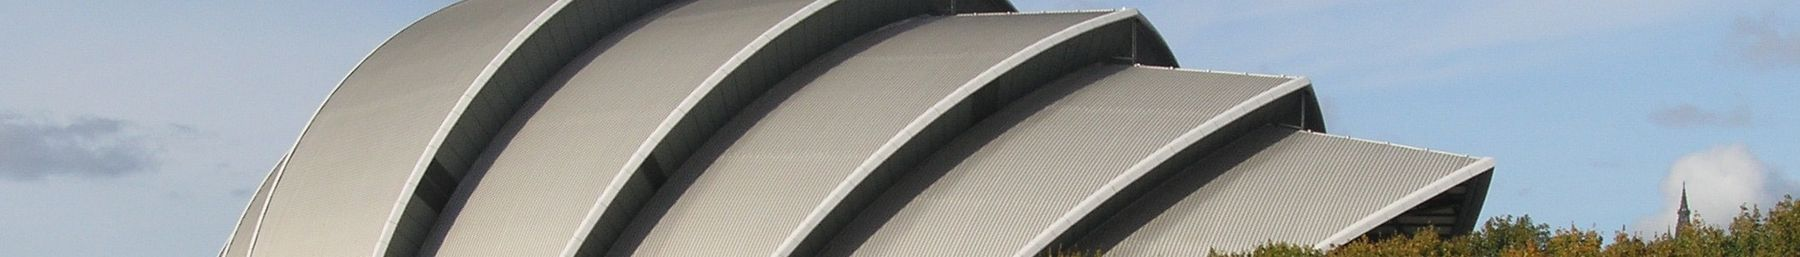 Clyde Auditorium Glasgow banner.jpg